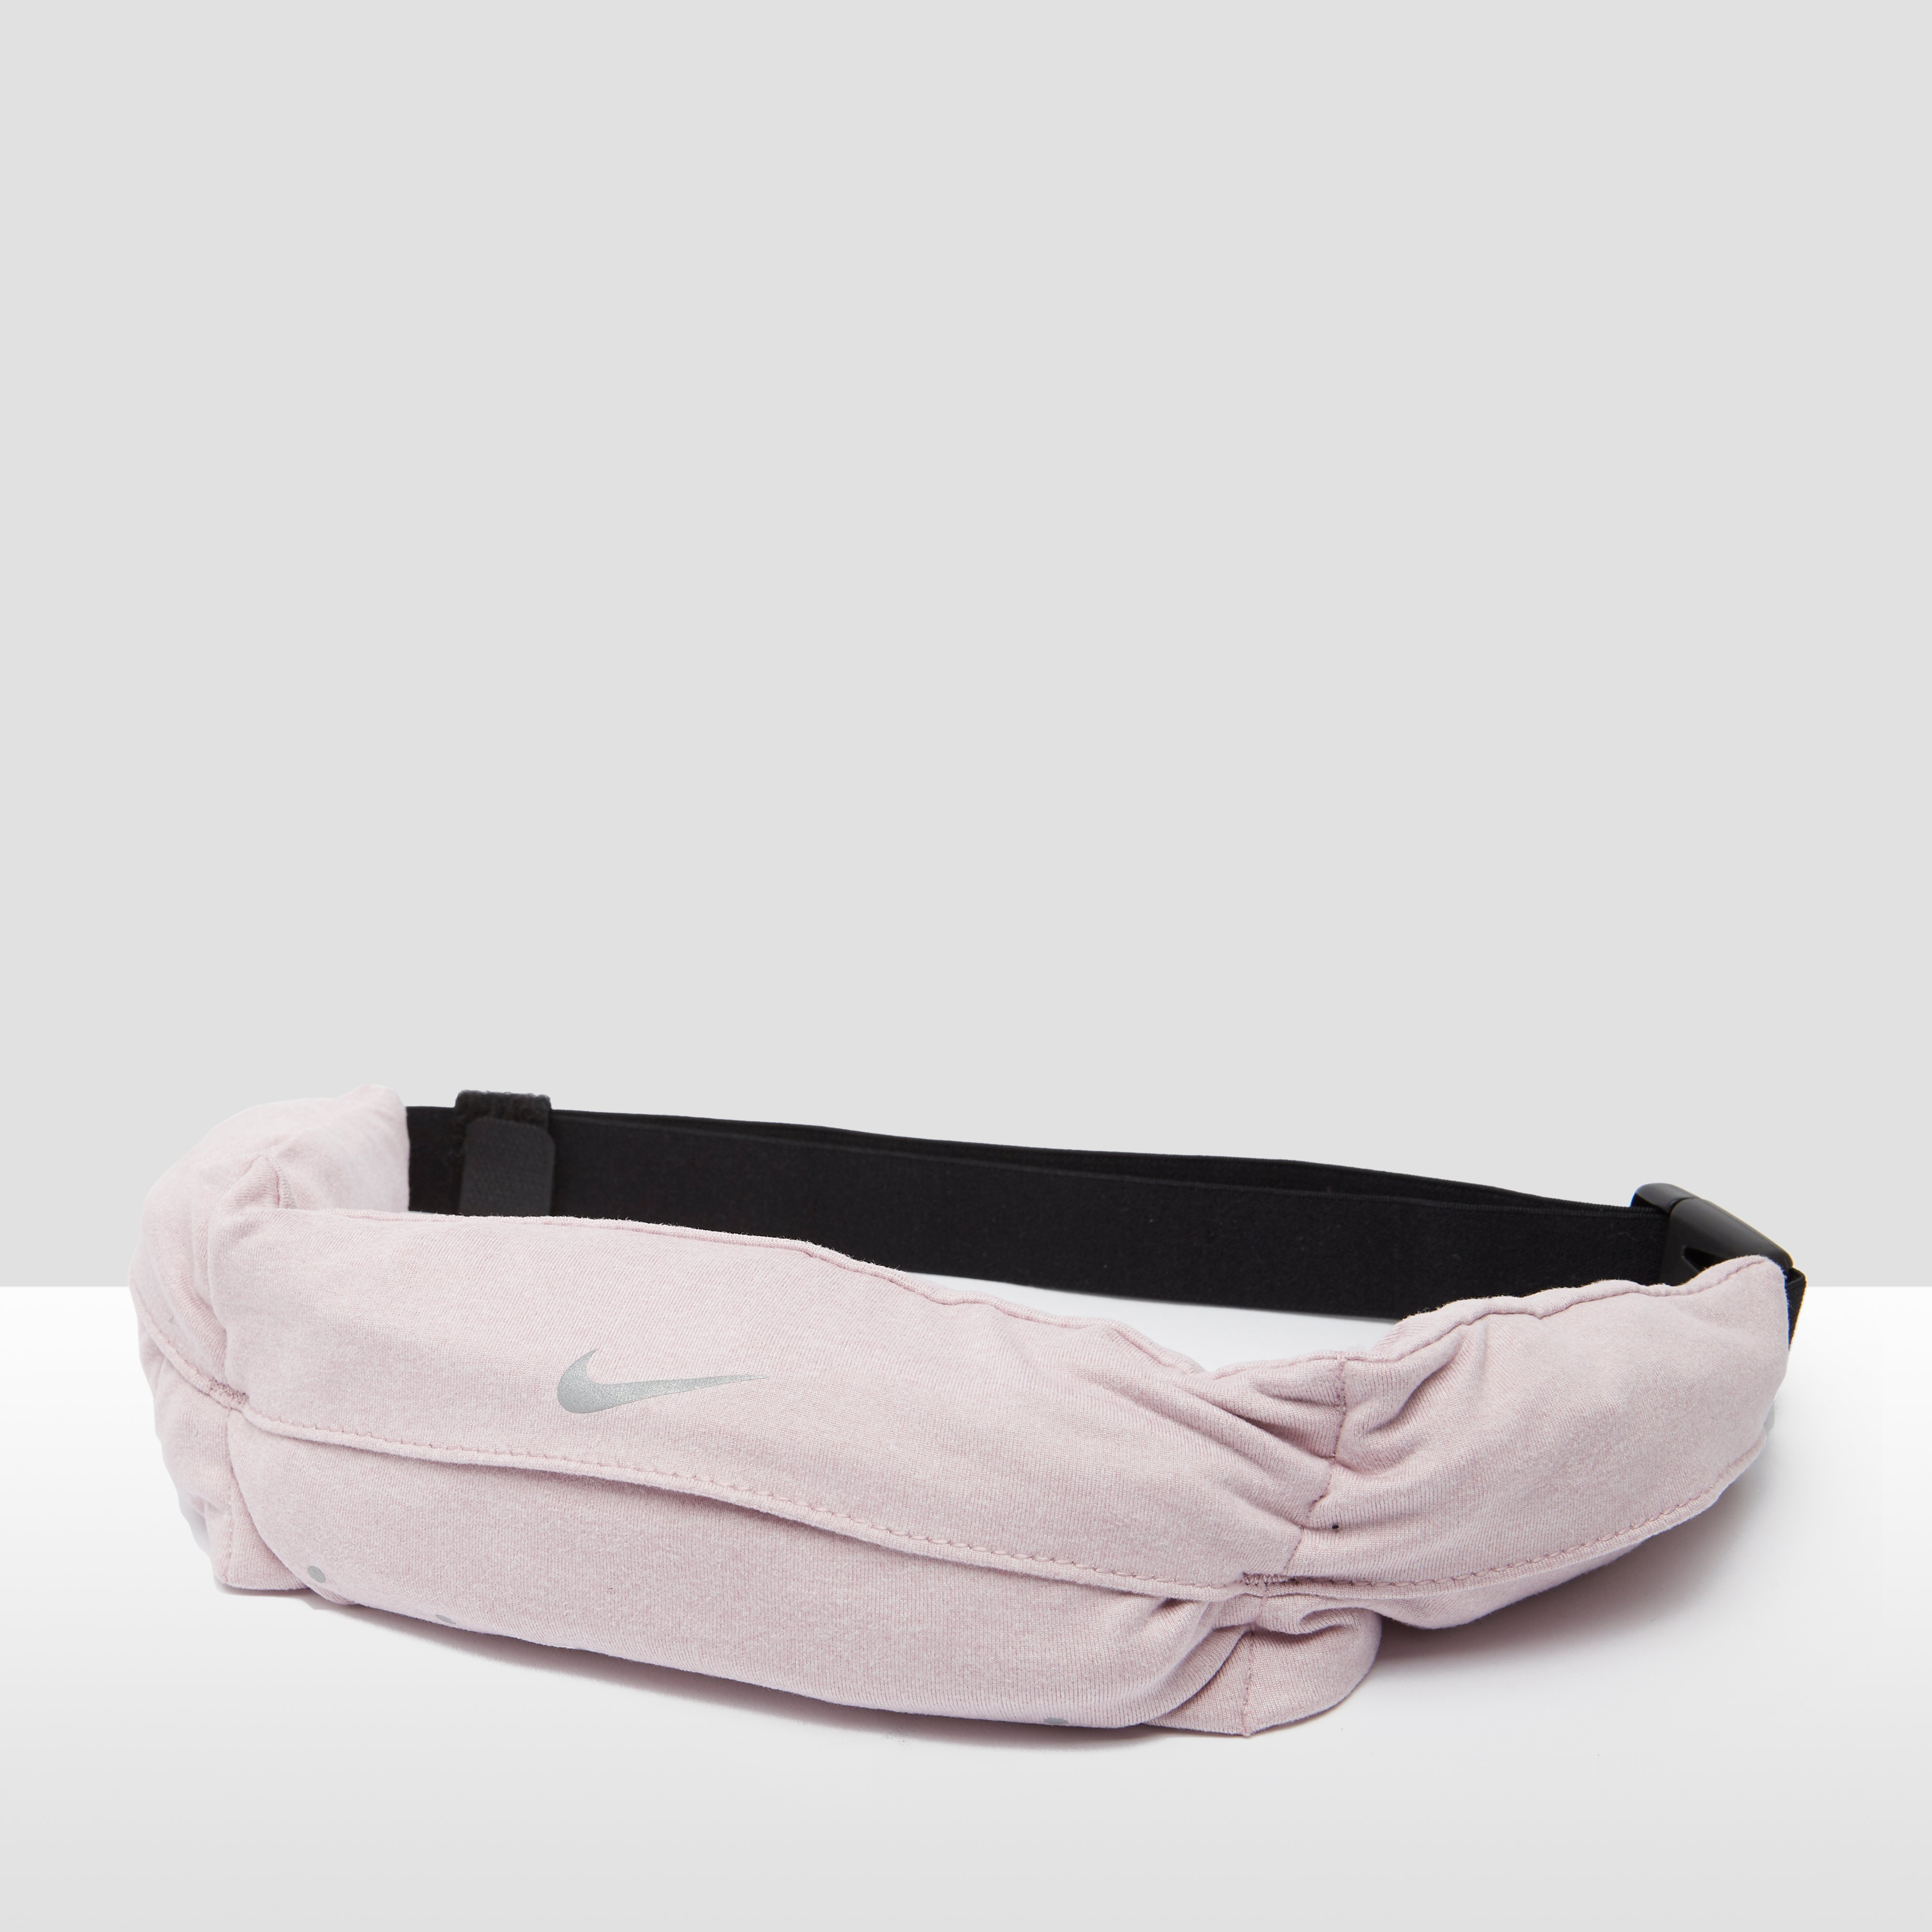 NIKE HEATHERED EXPAND HEUPTAS ROZE